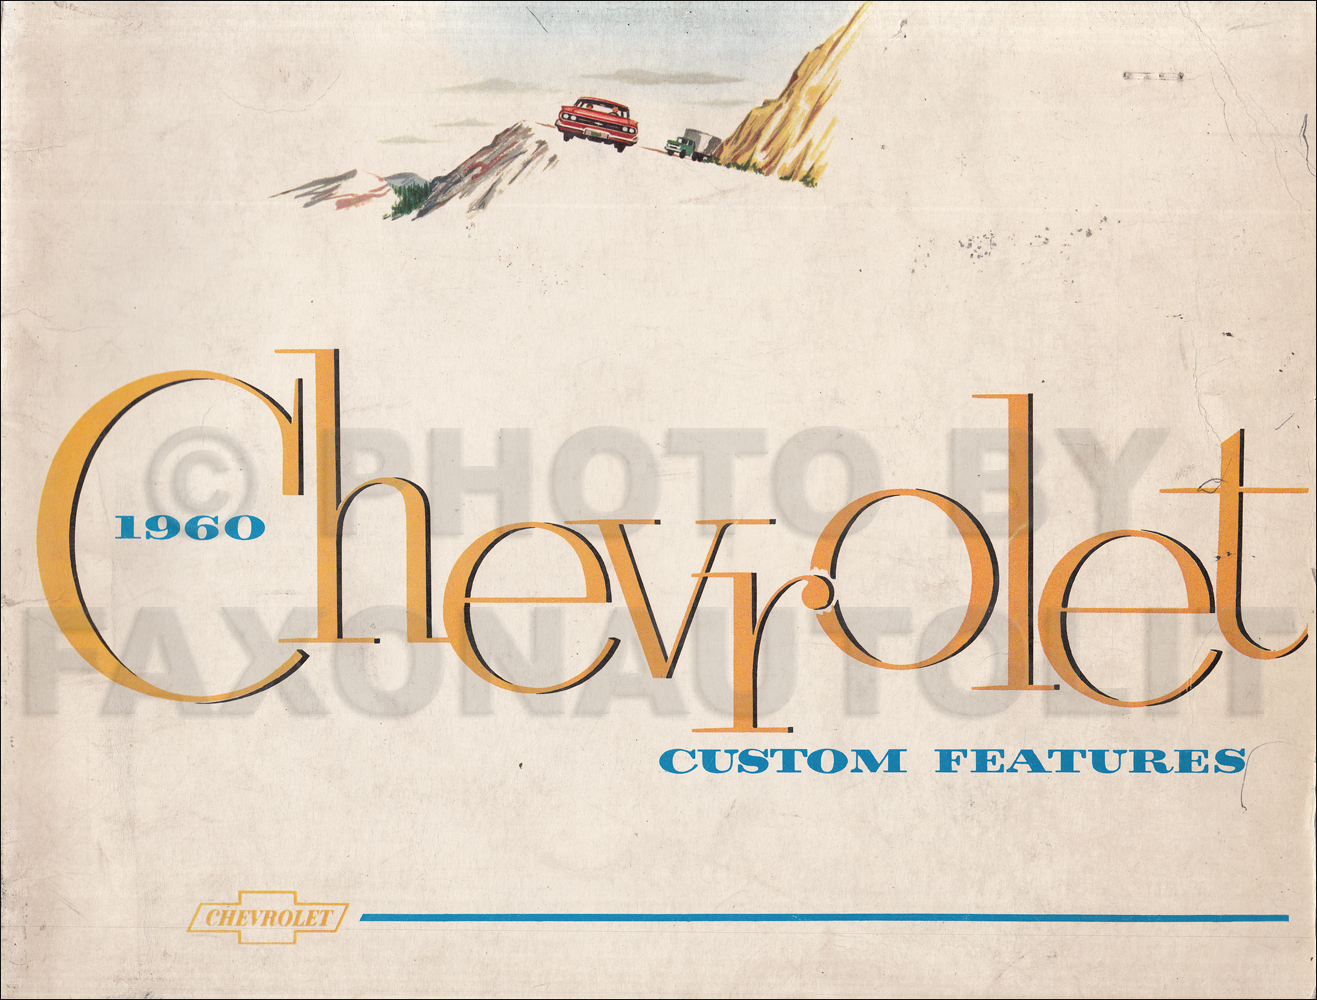 1960 Chevrolet Custom Feature Accessories Dealer Album Original